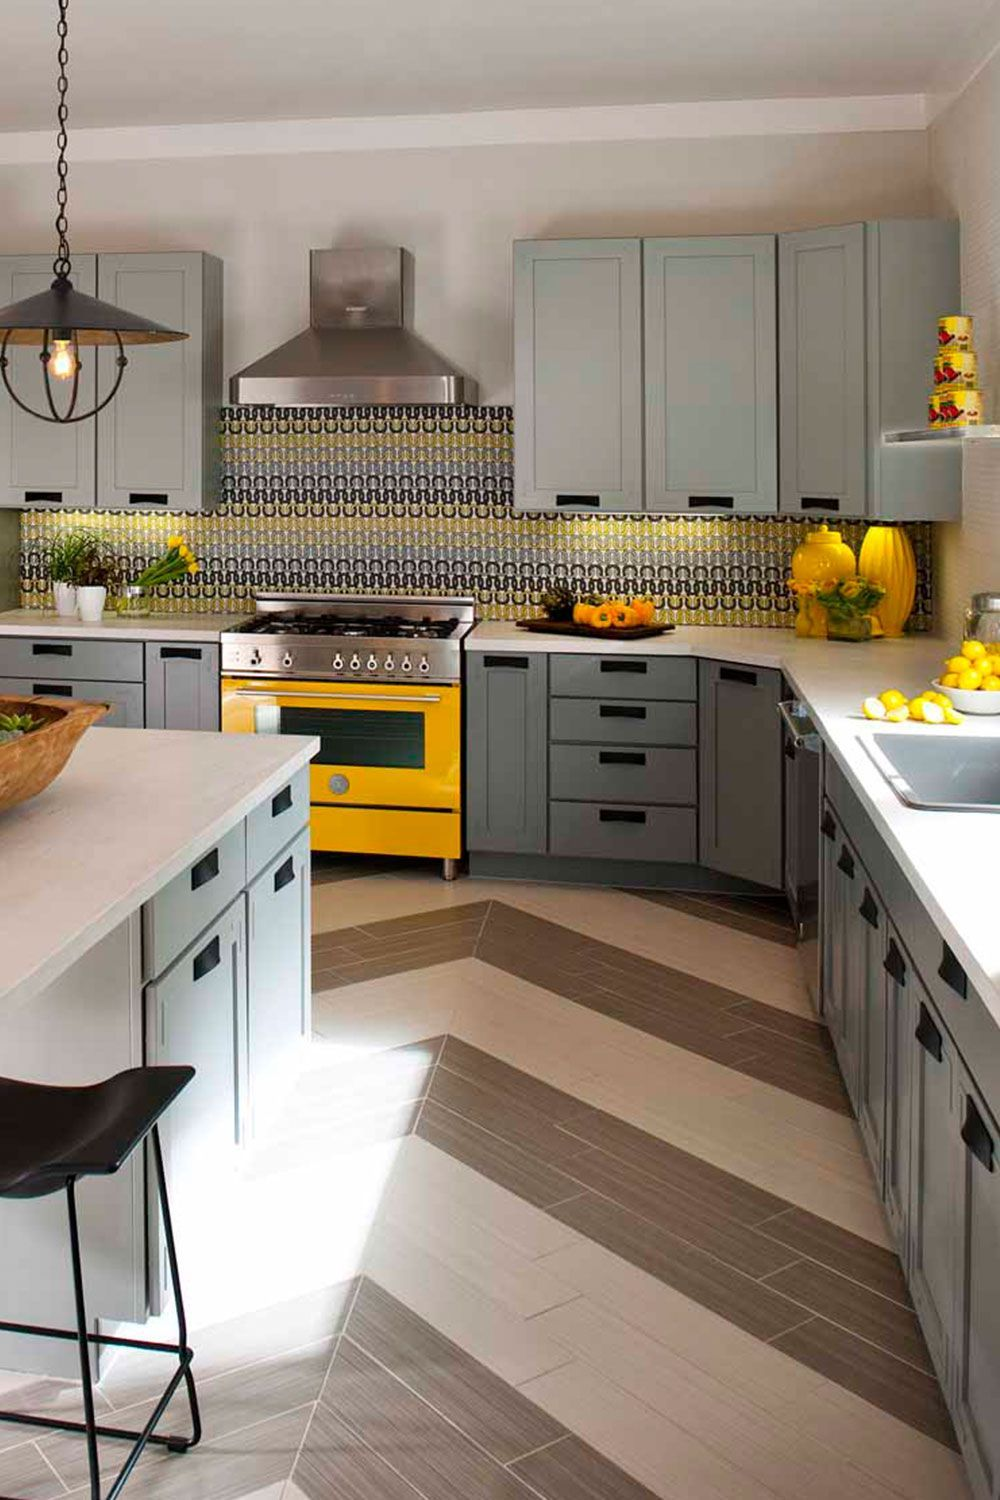 5 Yellow Kitchen Ideas To Brighten Up Your Home (With images